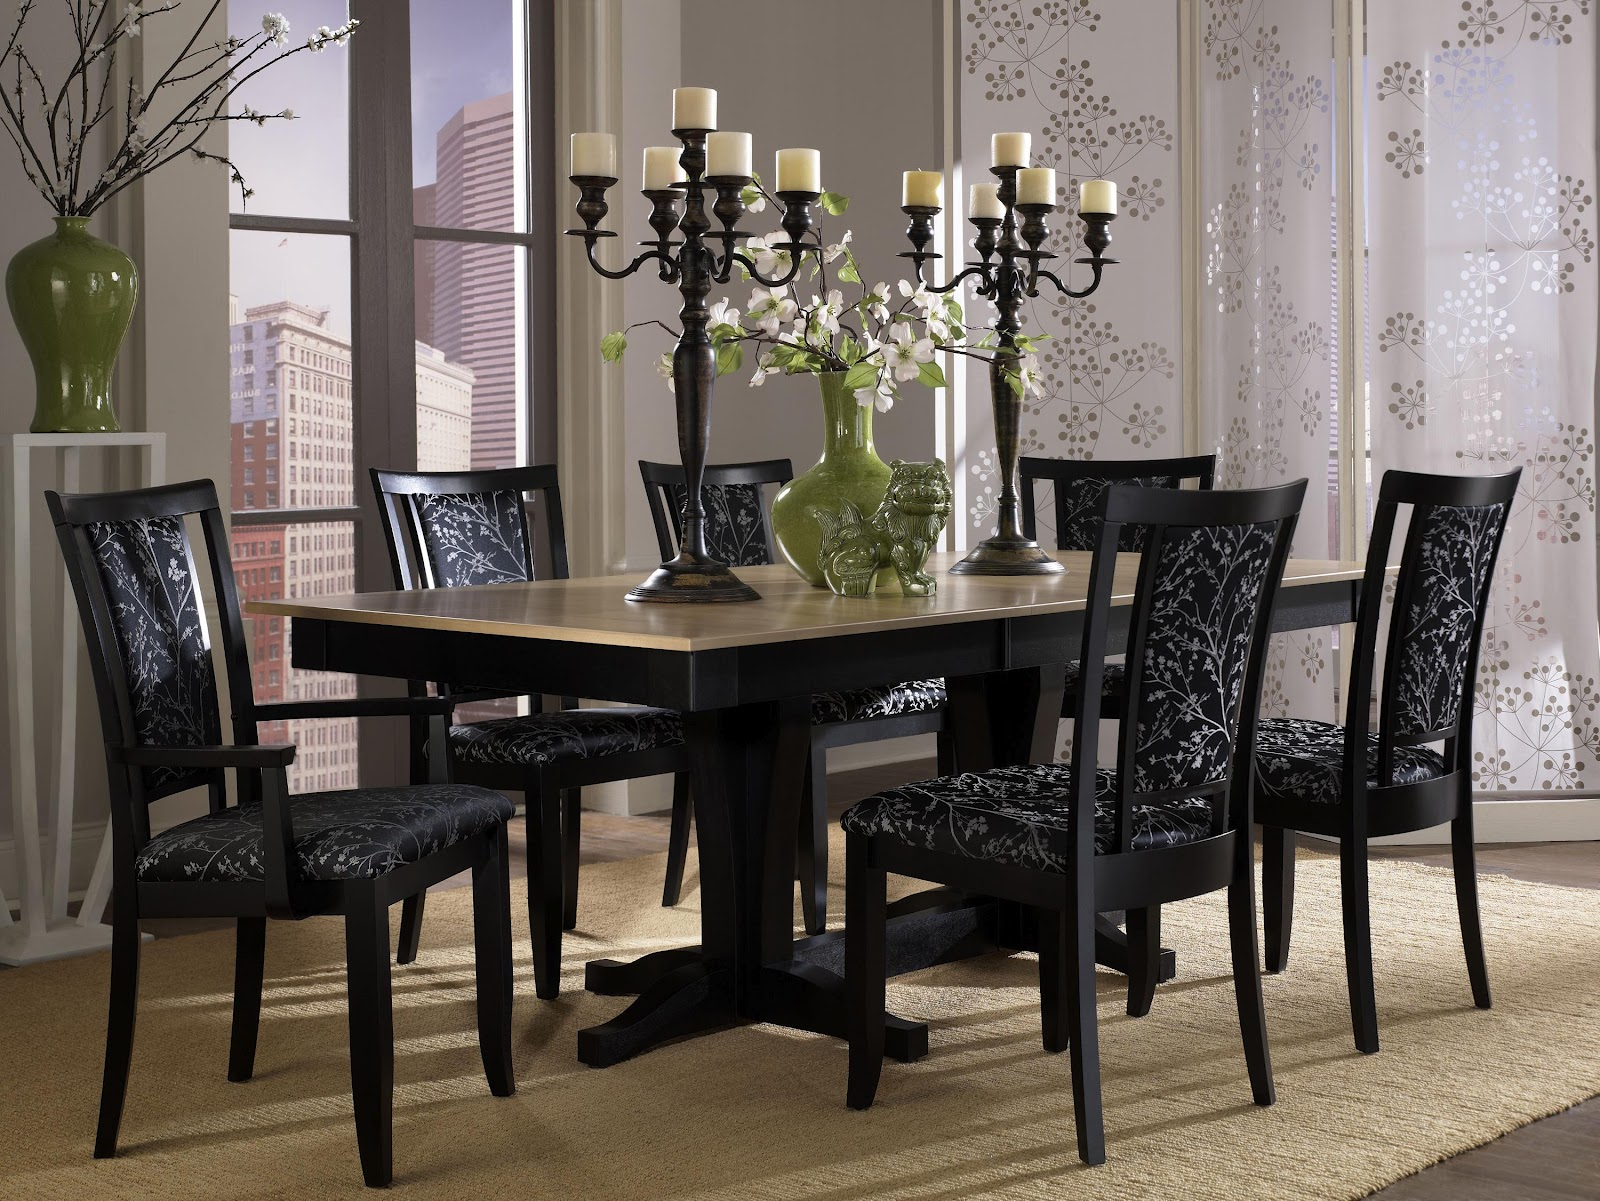 Canadel Dining Room Sets New York | DINING ROOM,UNIQUE DINETTE,CANADEL NY,BERMEX NY,631 742 1351 ...